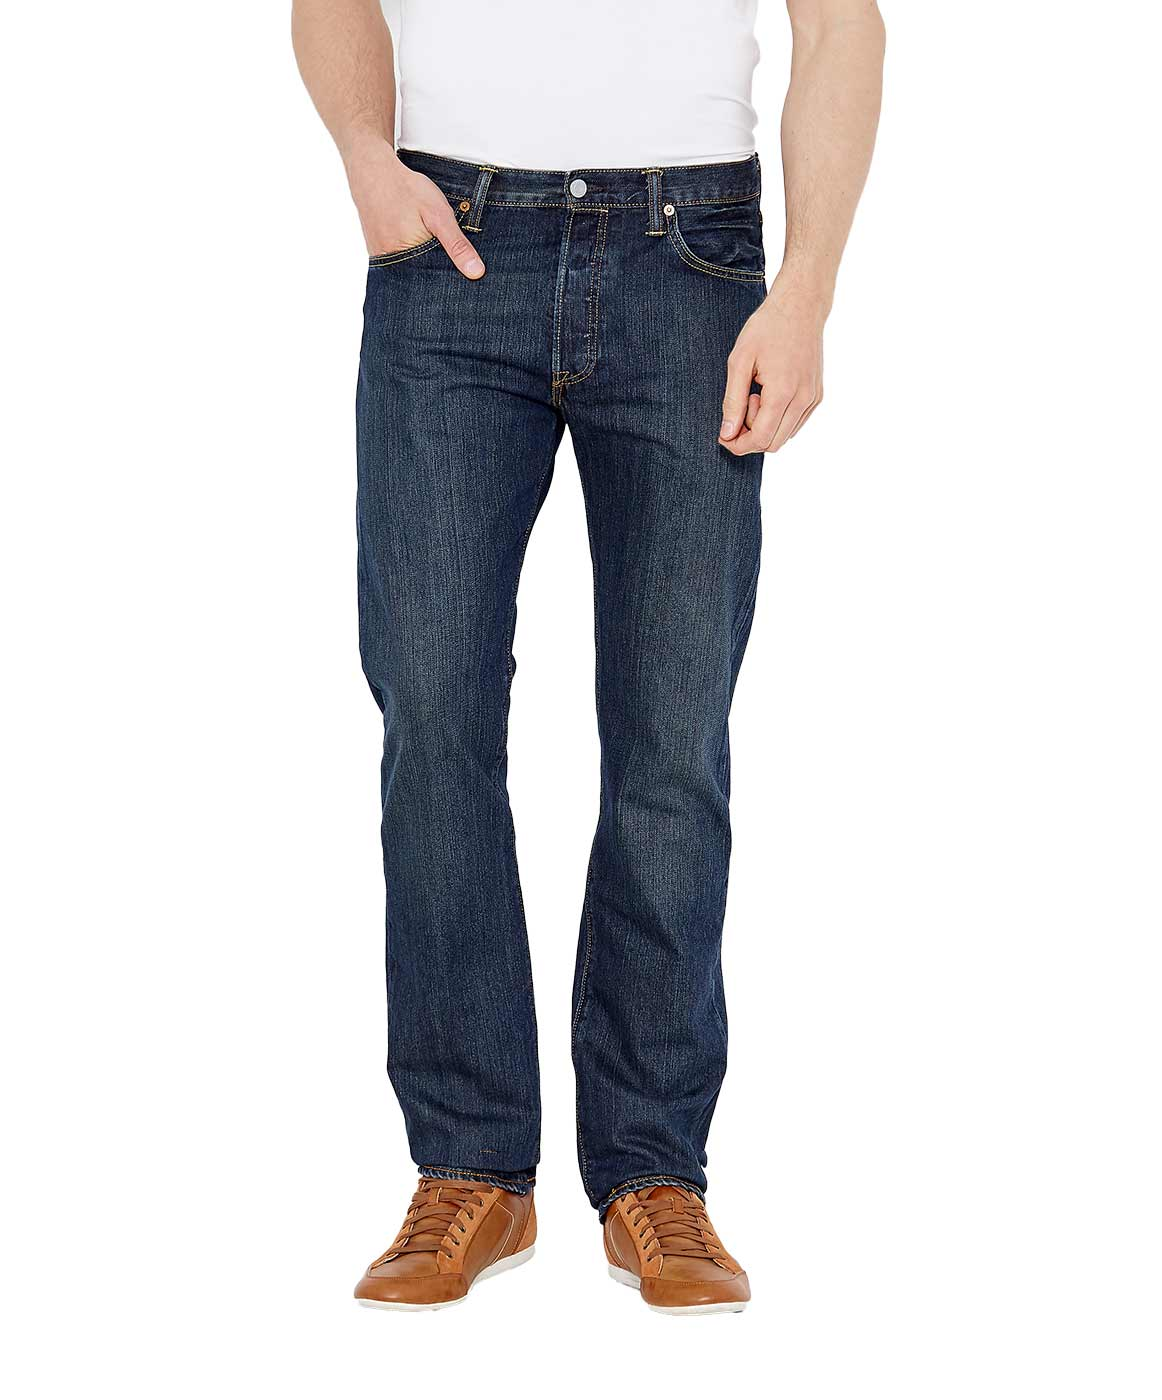 Levi's 501 Jeans - Original Fit - Dark Clean